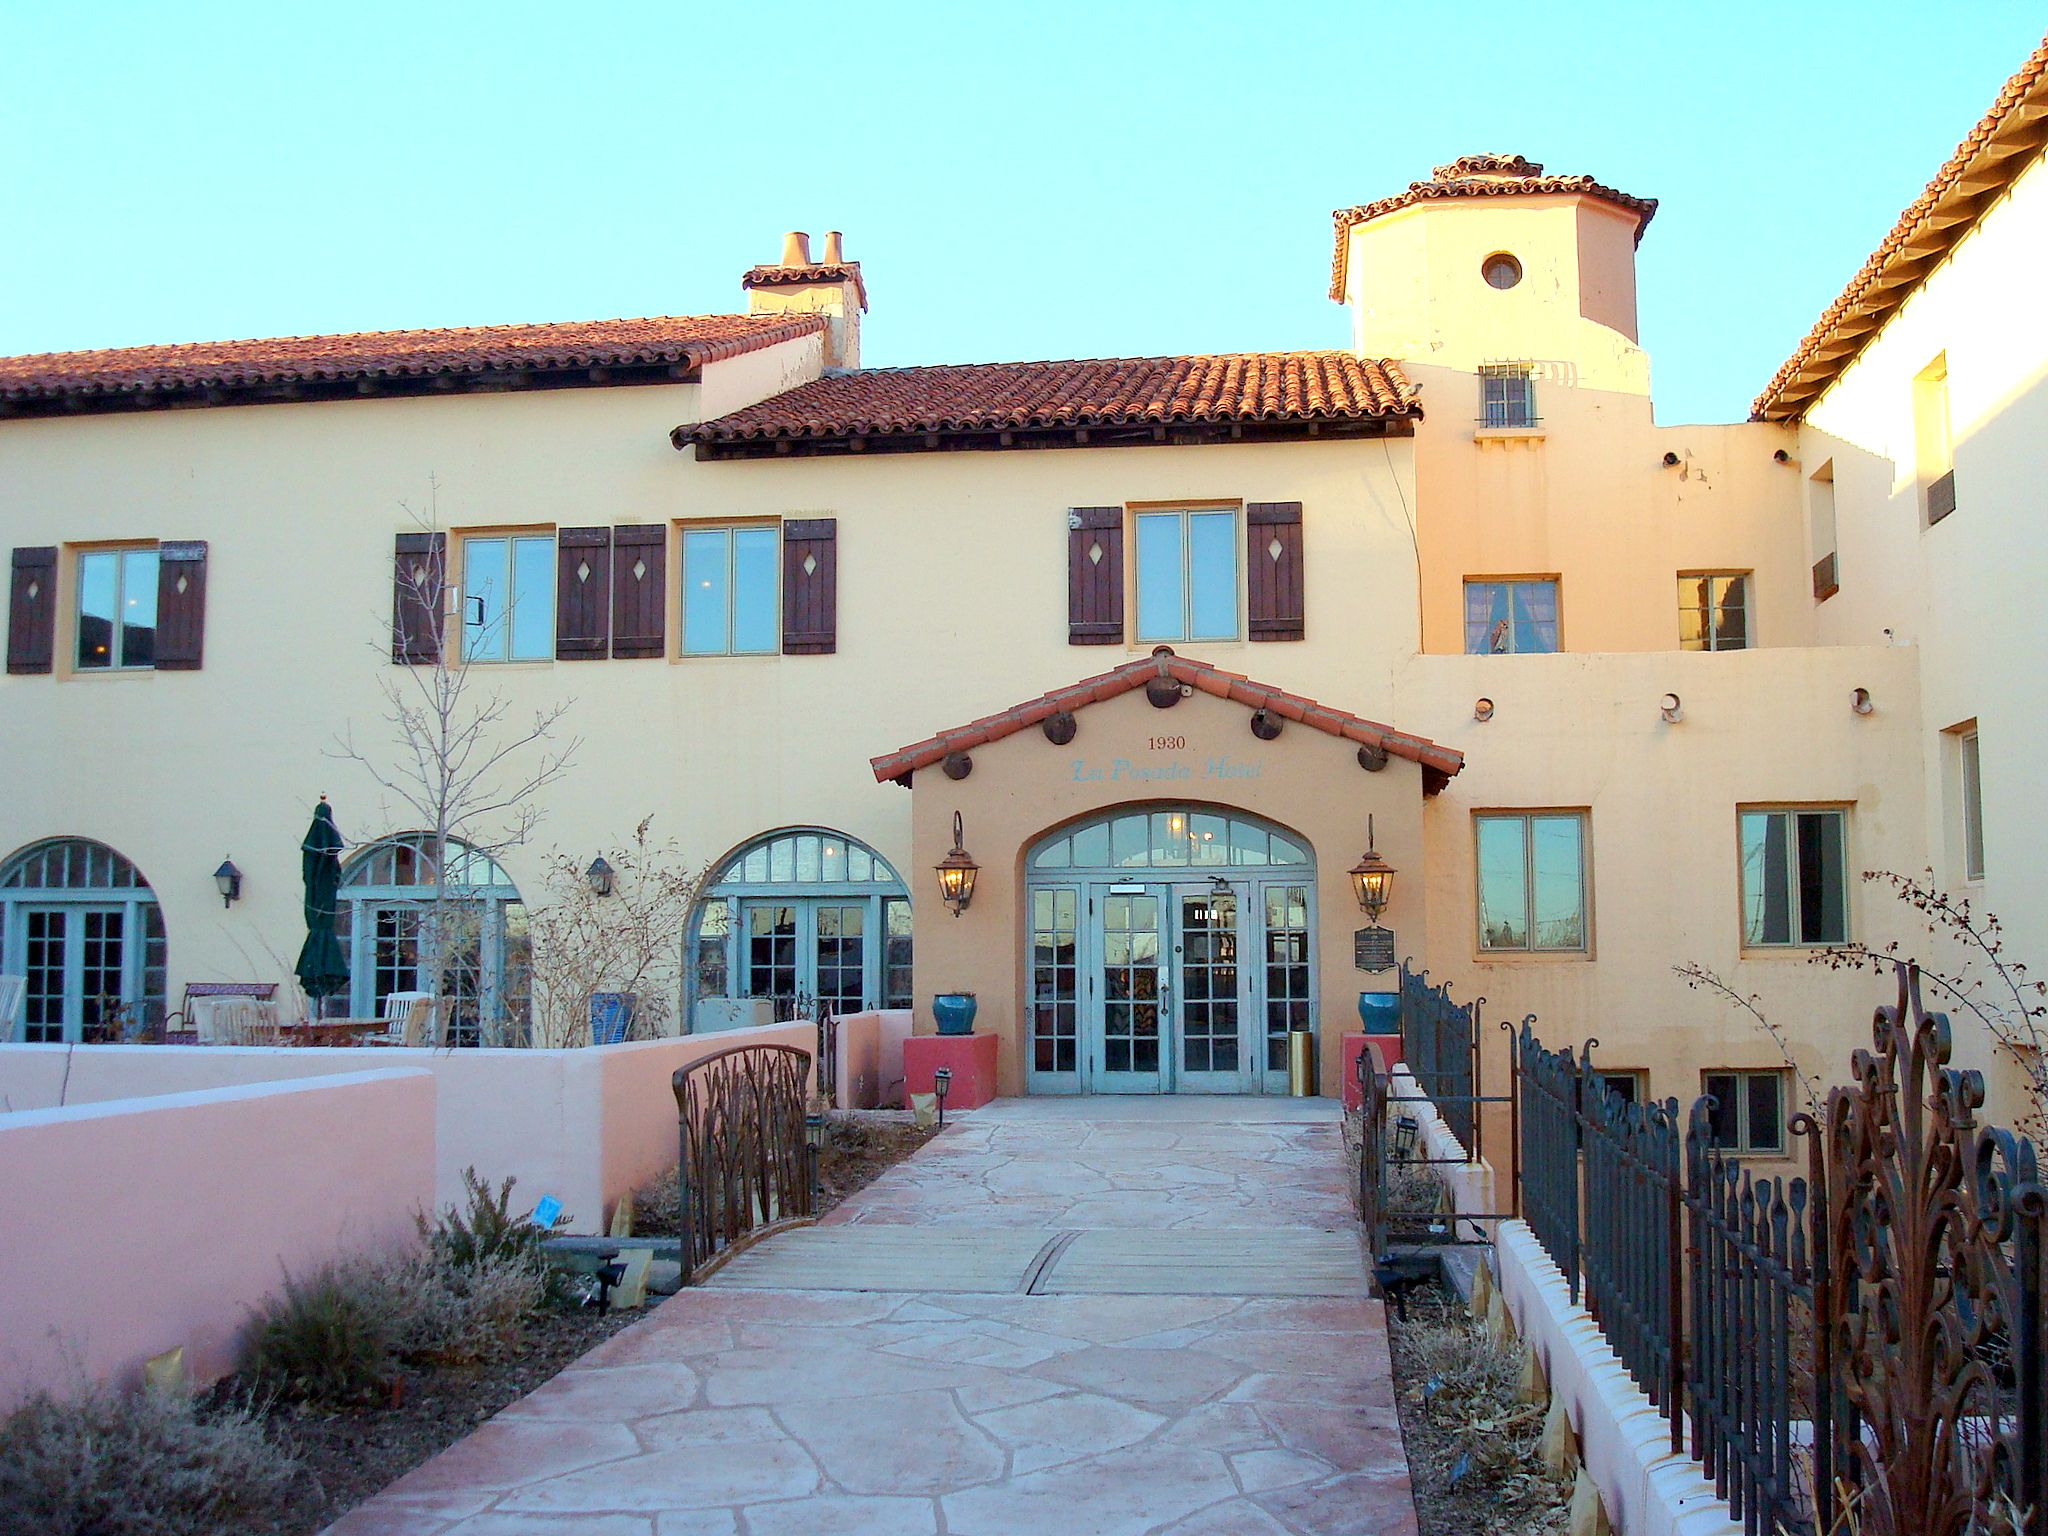 La Posada Hotel Winslow Az Last Of The Great Railroad Harvey House Hotels A Must See